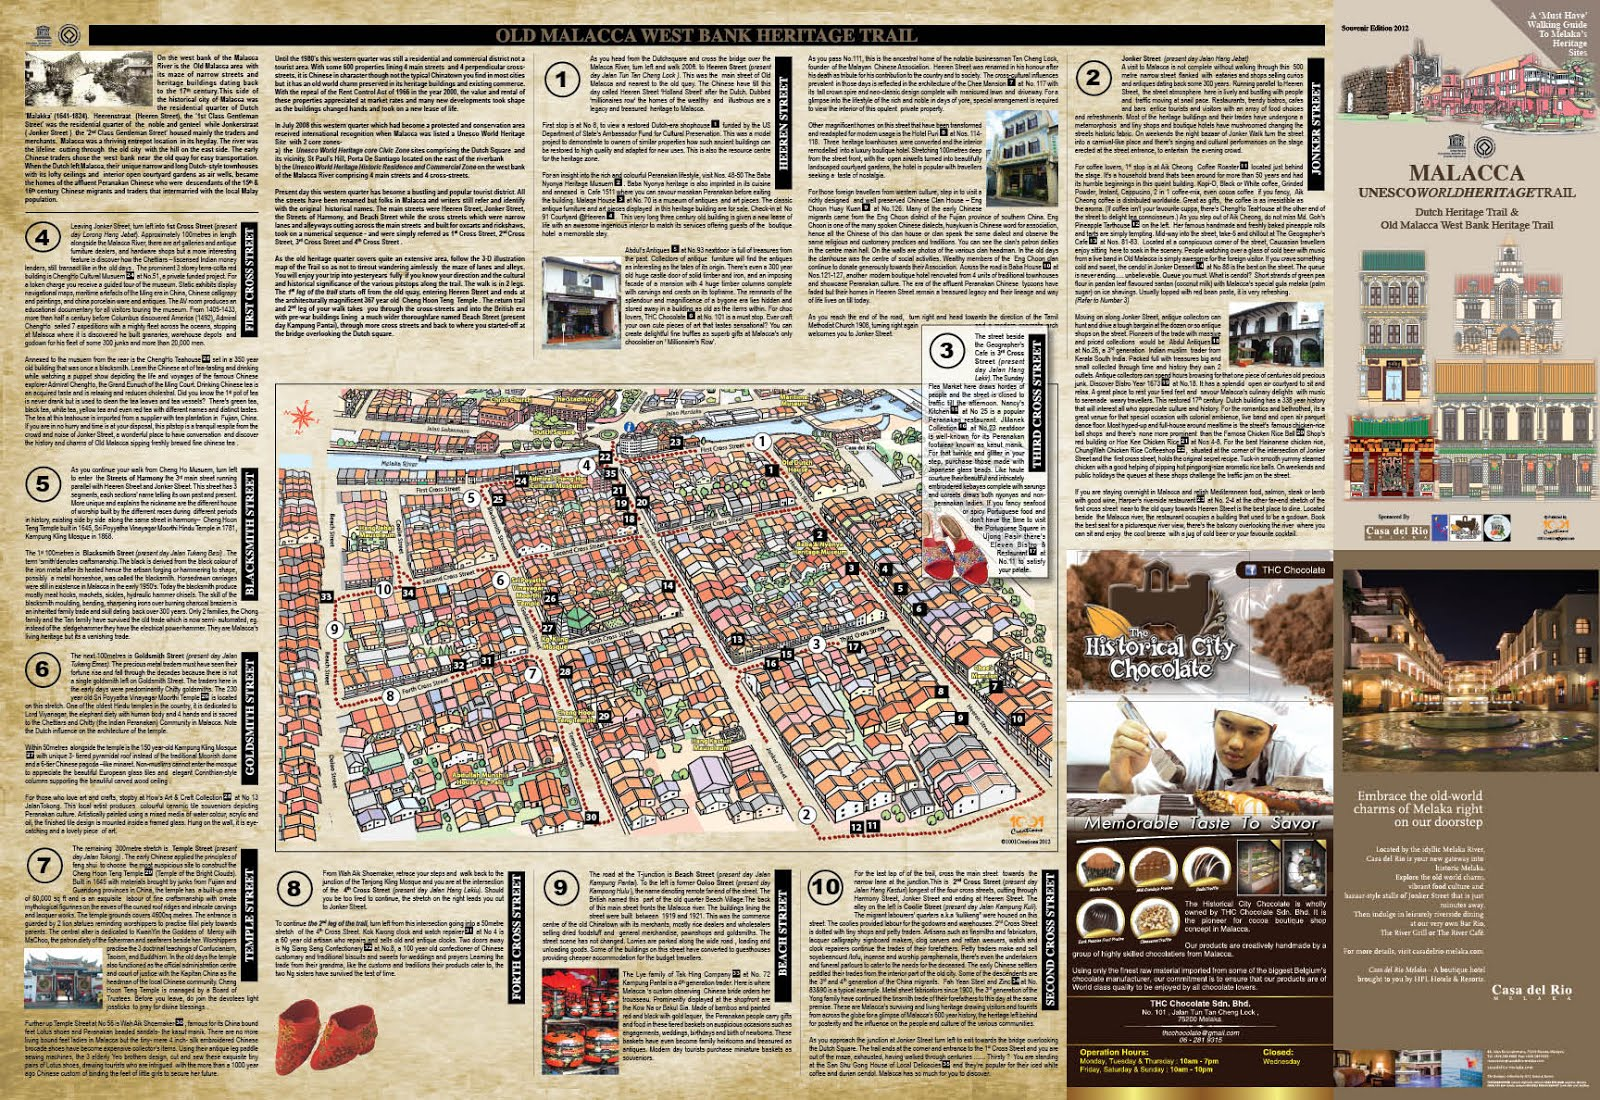 world heritage at malacca Malacca food review - paranakan heritage and food malacca - a unesco world heritage site with more than 500 years of trading hub between east and west in(.